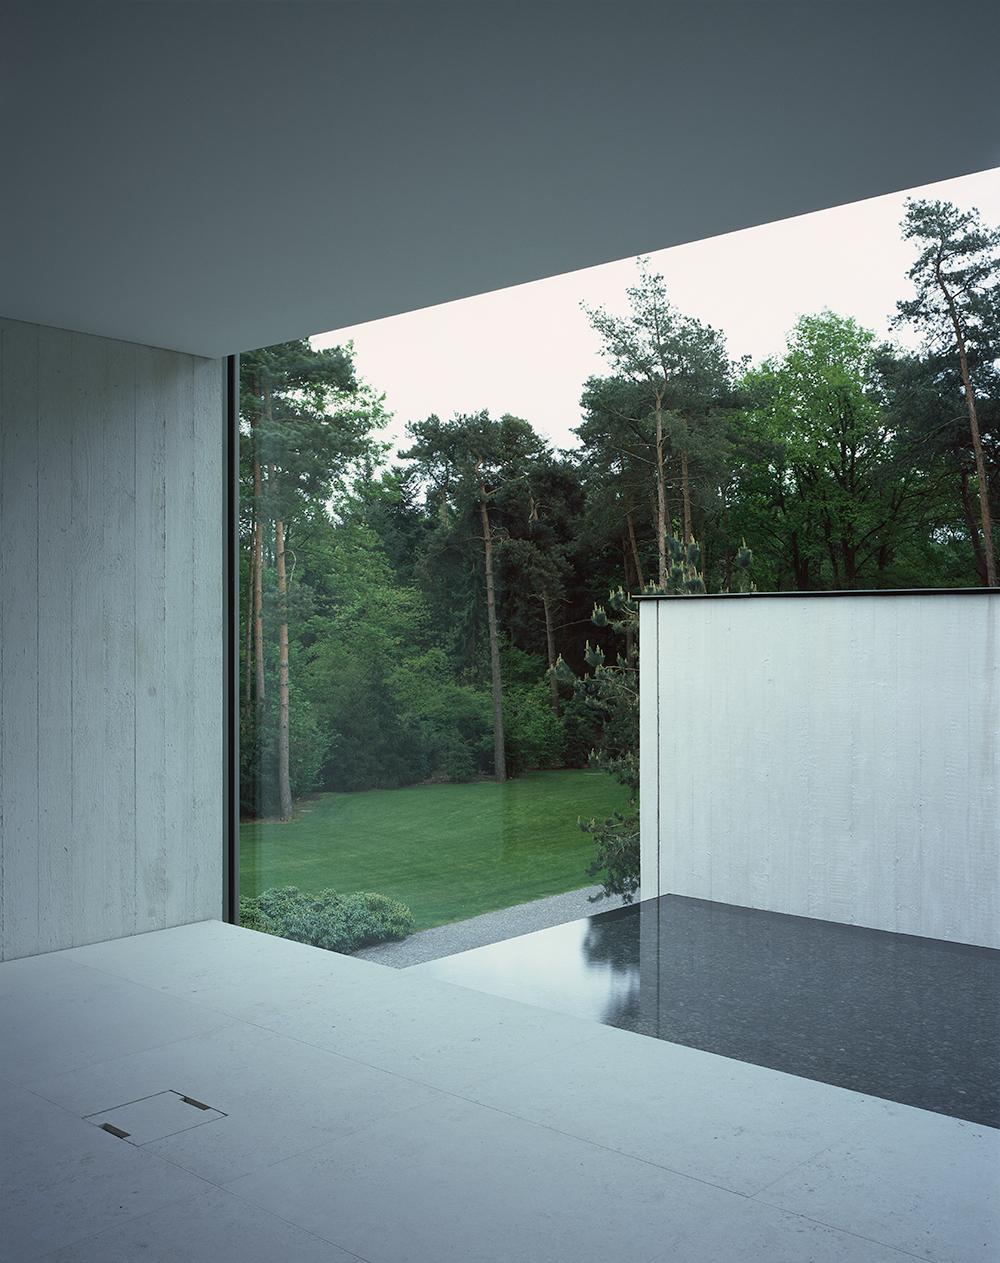 Interior view of modern Villa Waalre, by Russell Jones, Eindhoven, The Netherlands